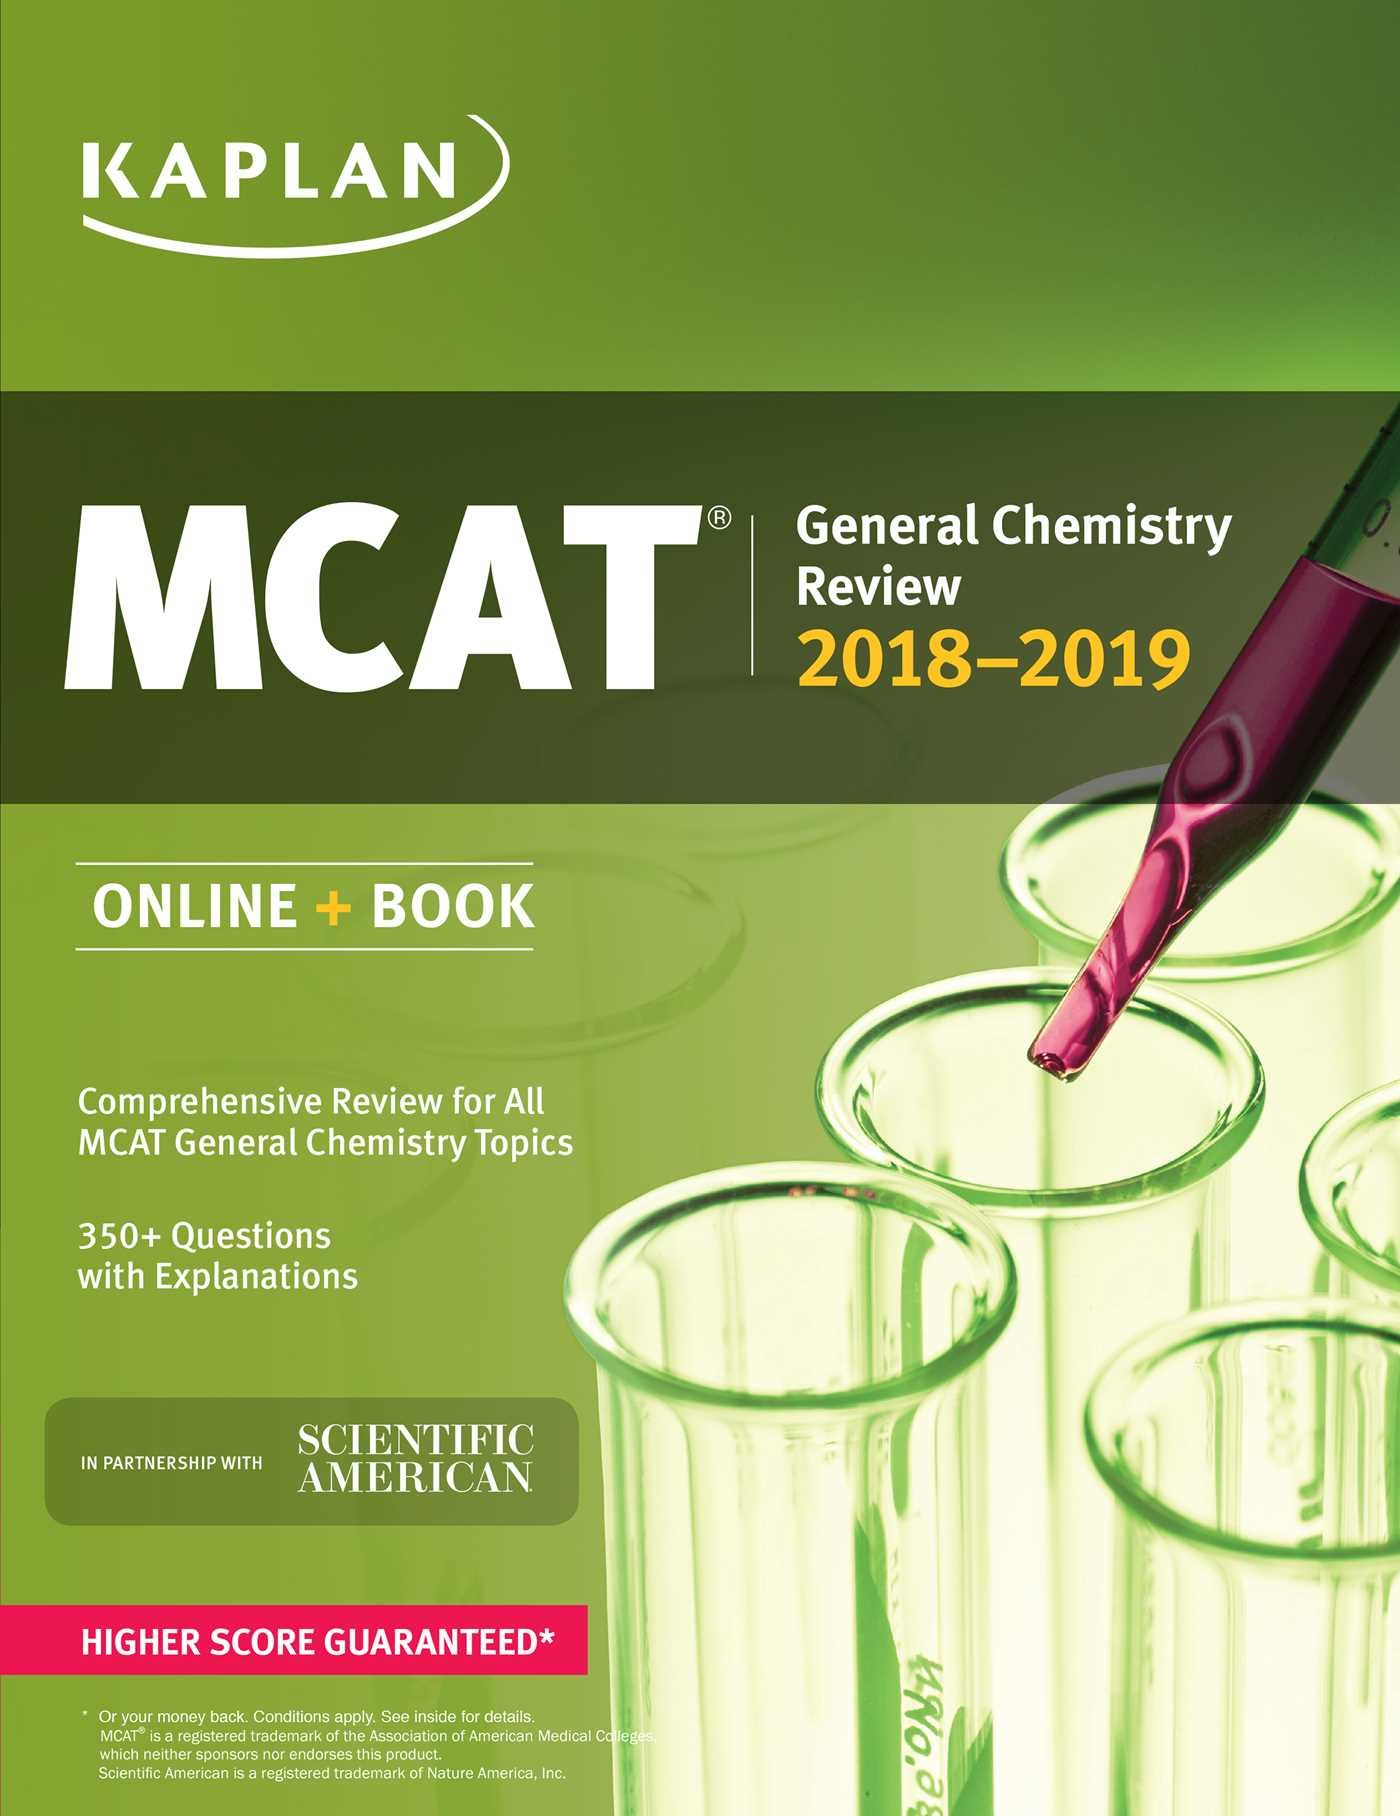 MCAT General Chemistry Review 2018-2019: Online + Book: Kaplan Test Prep:  9781506223834: Books - Amazon.ca